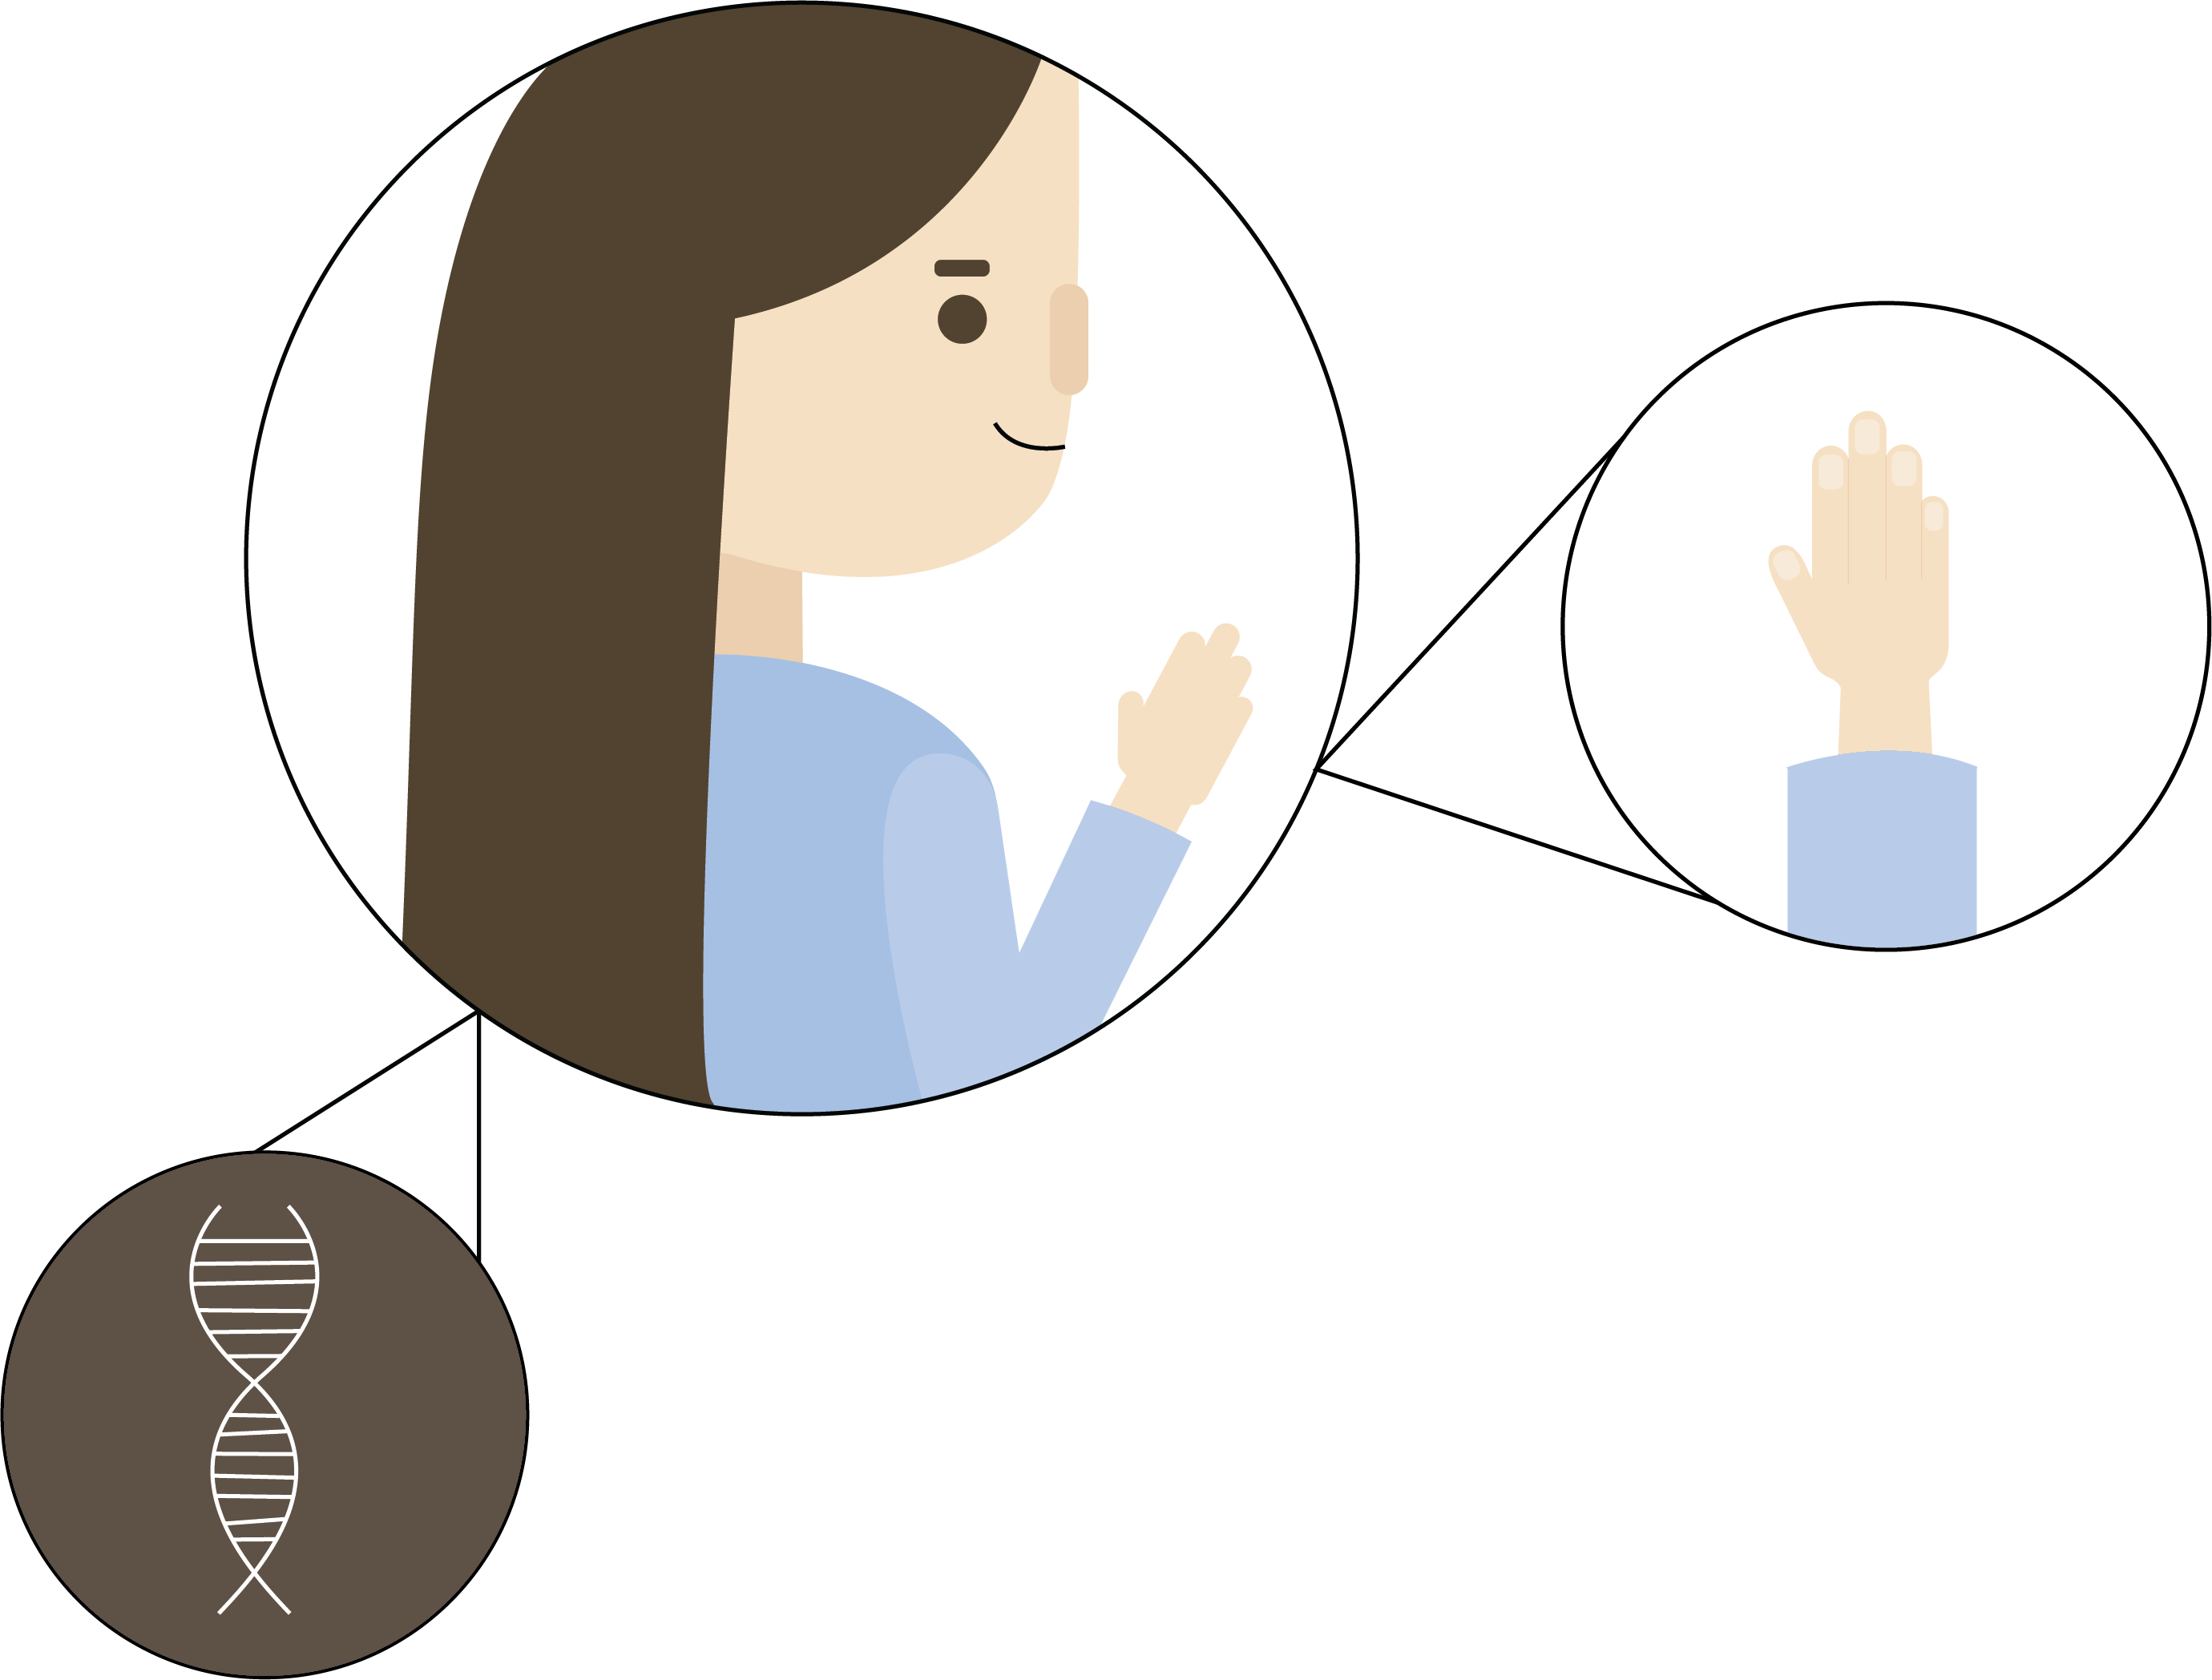 Image of a person highlighting the DNA of the hair and zooming in on her hands.